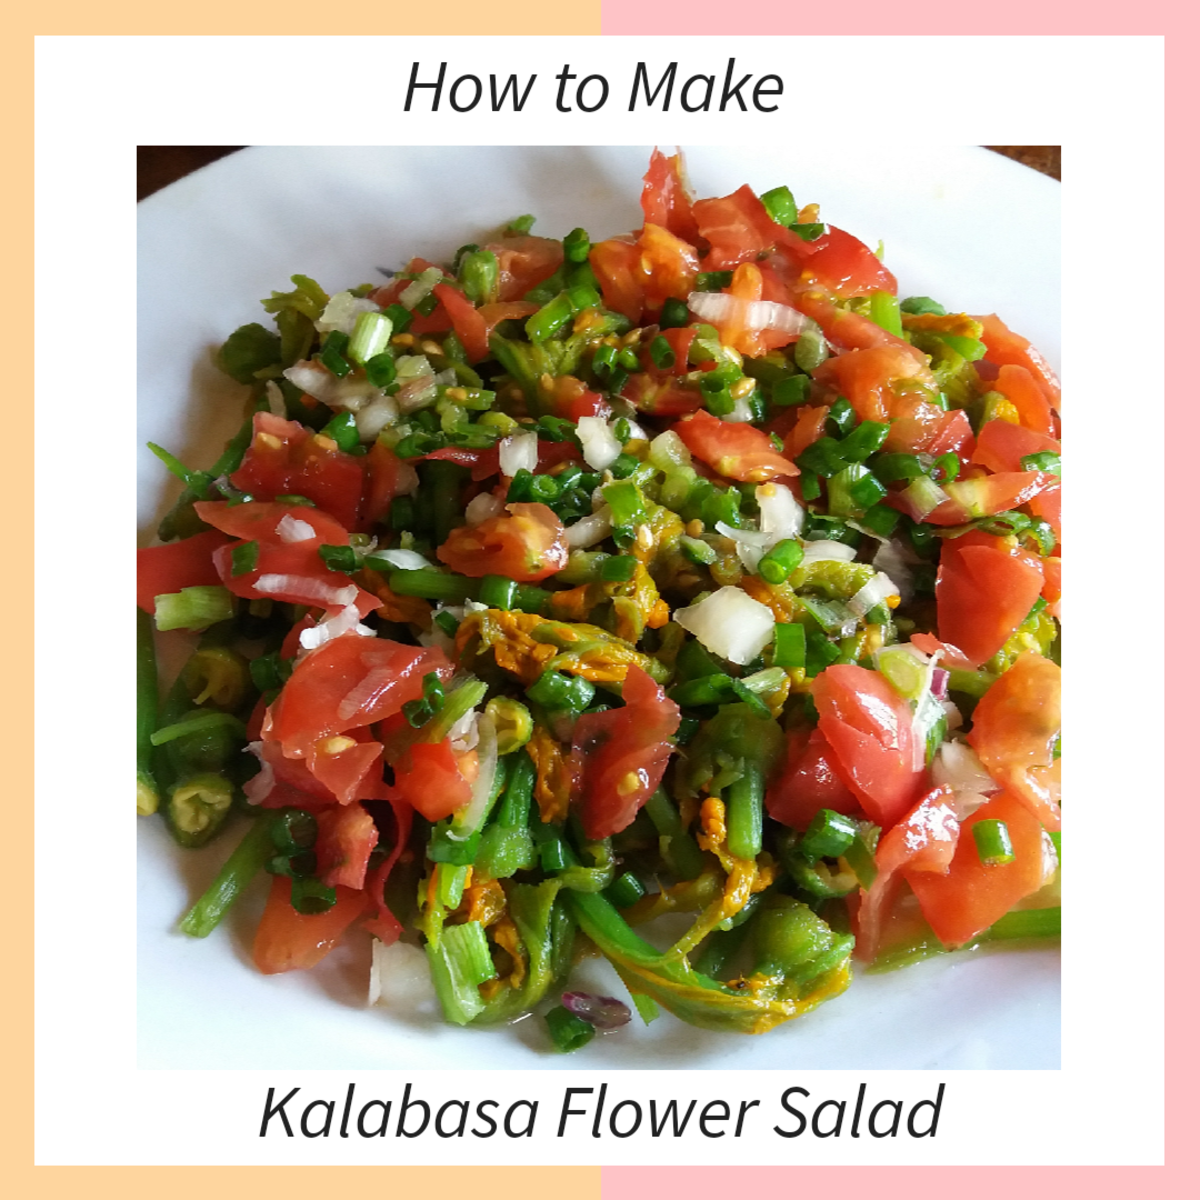 Kalabasa flower salad